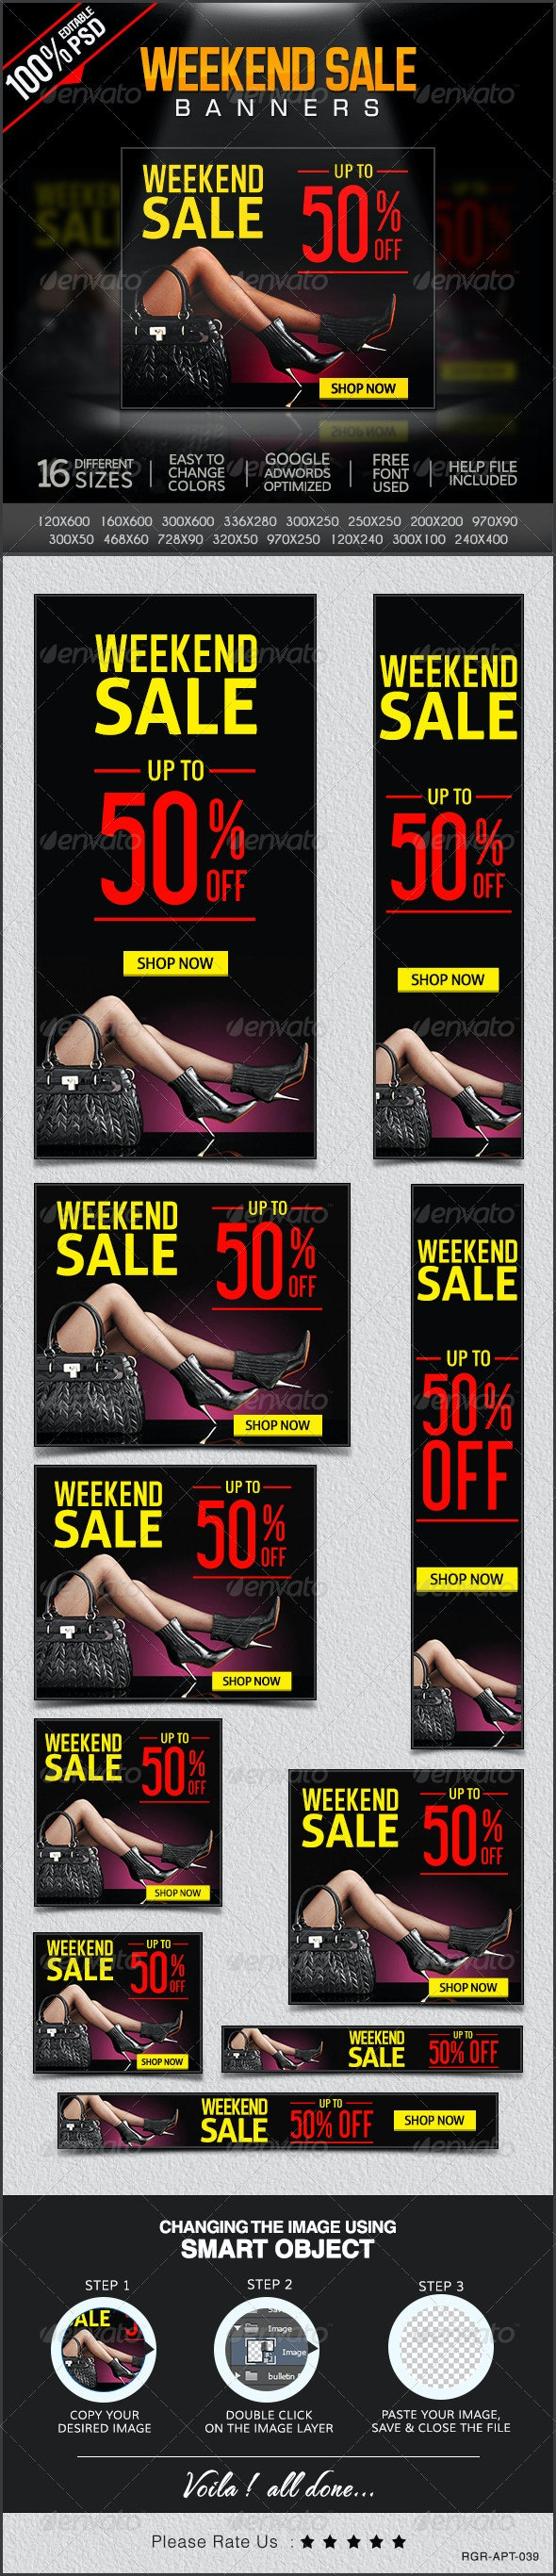 Weekend Super Sale Banners - Banners & Ads Web Elements